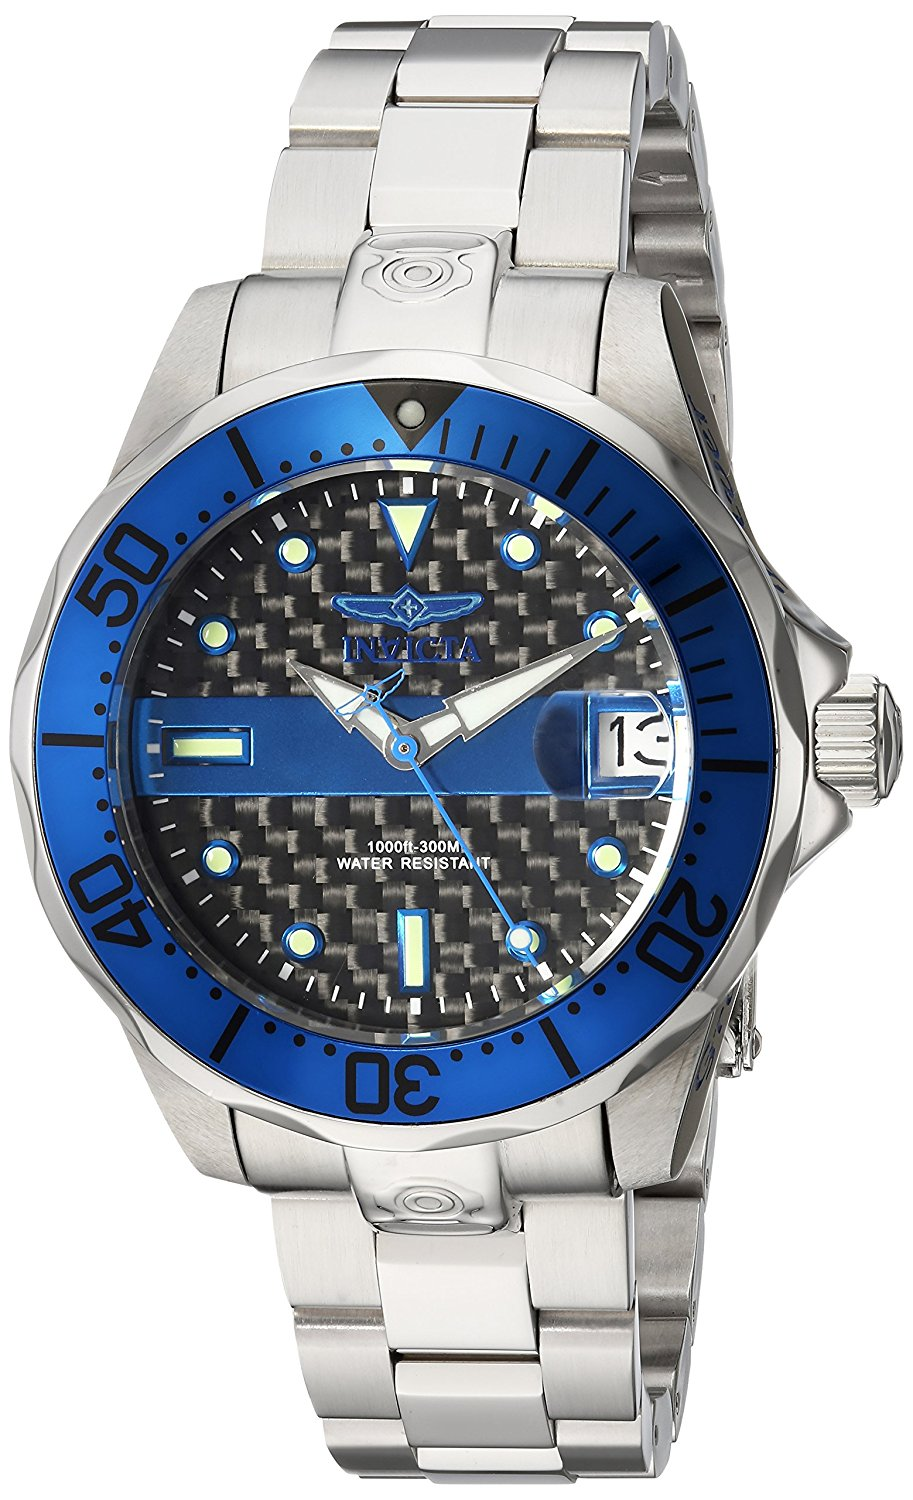 Invicta Women's 'Pro Diver' Automatic Stainless Steel Diving Watch, Color Silver-Toned (Model: 23151)